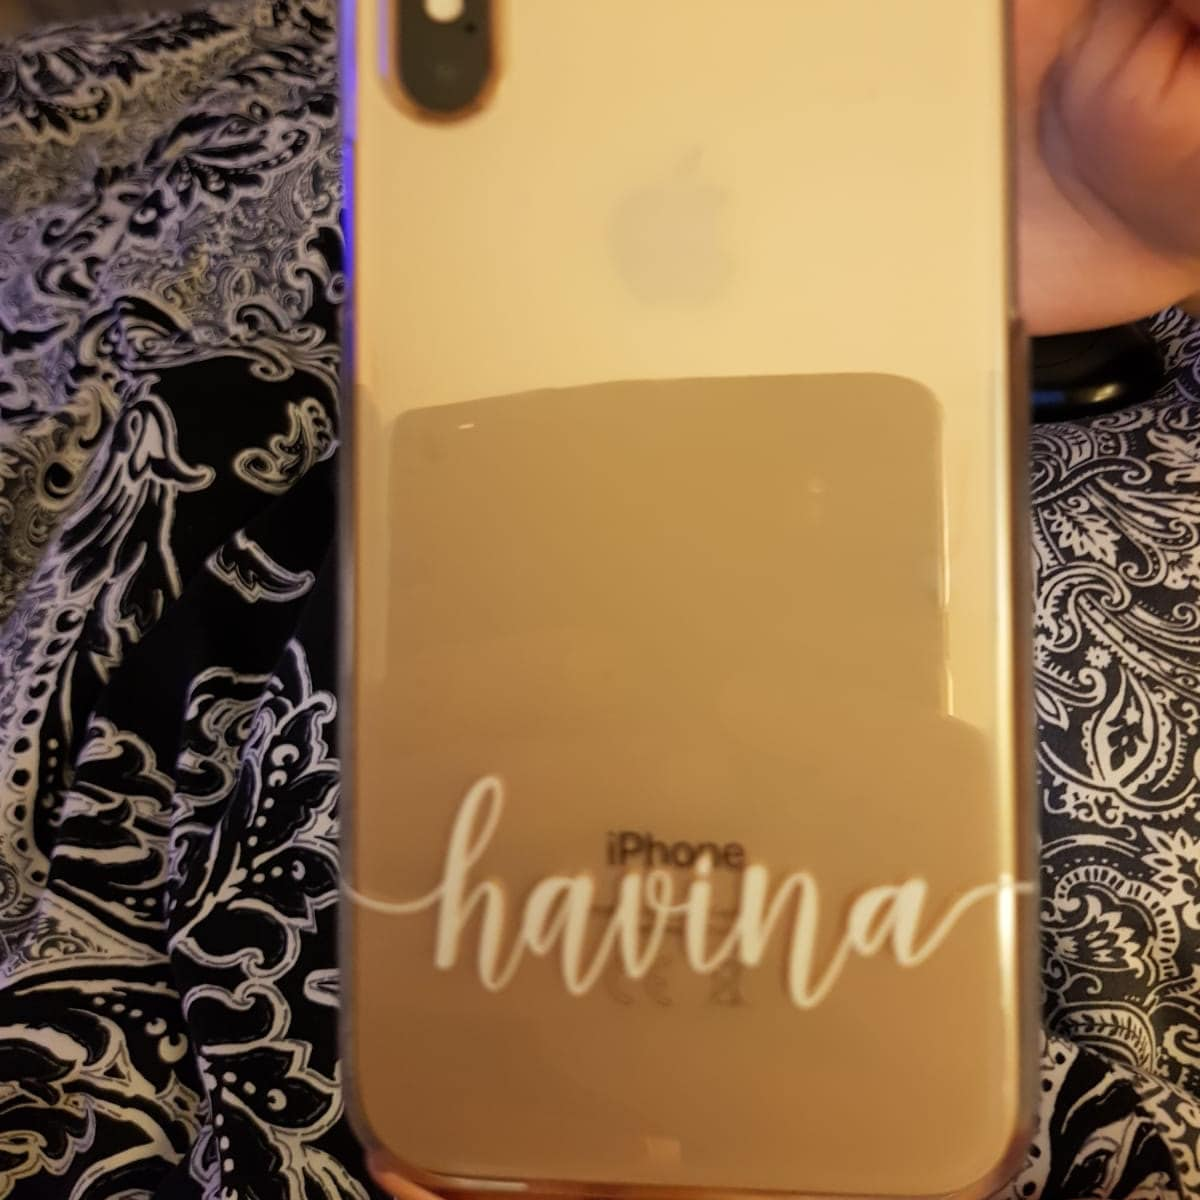 havina123 added a photo of their purchase